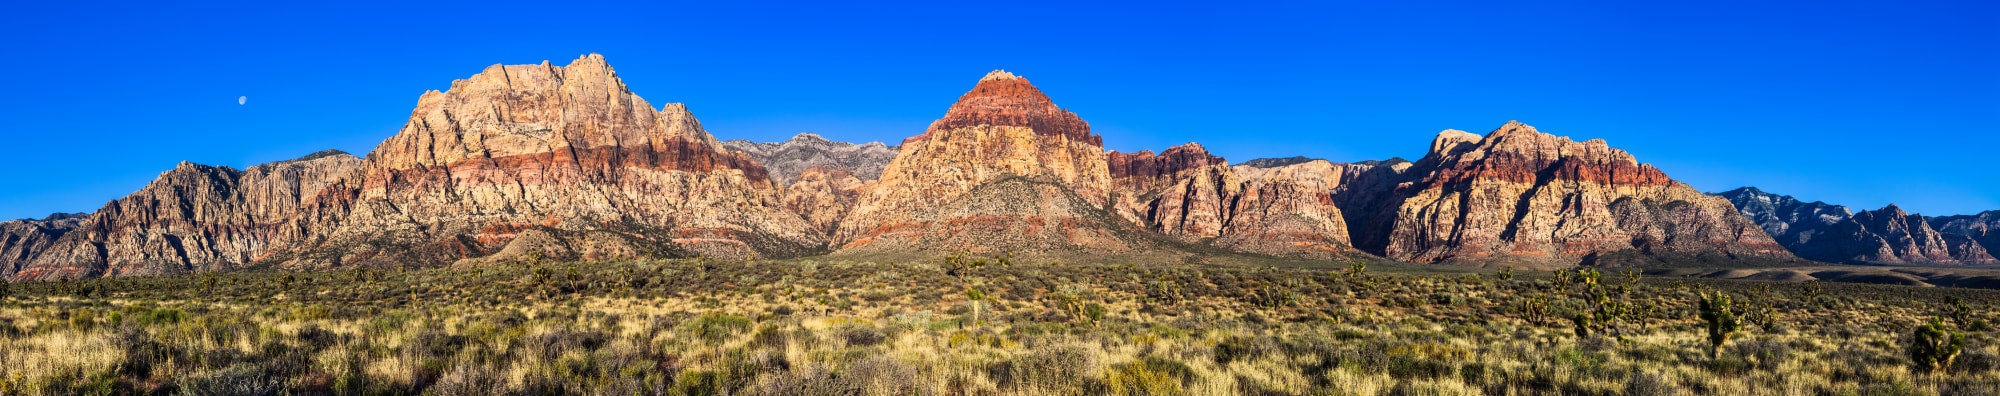 Panoramic photo of Nevada mountains in the desert